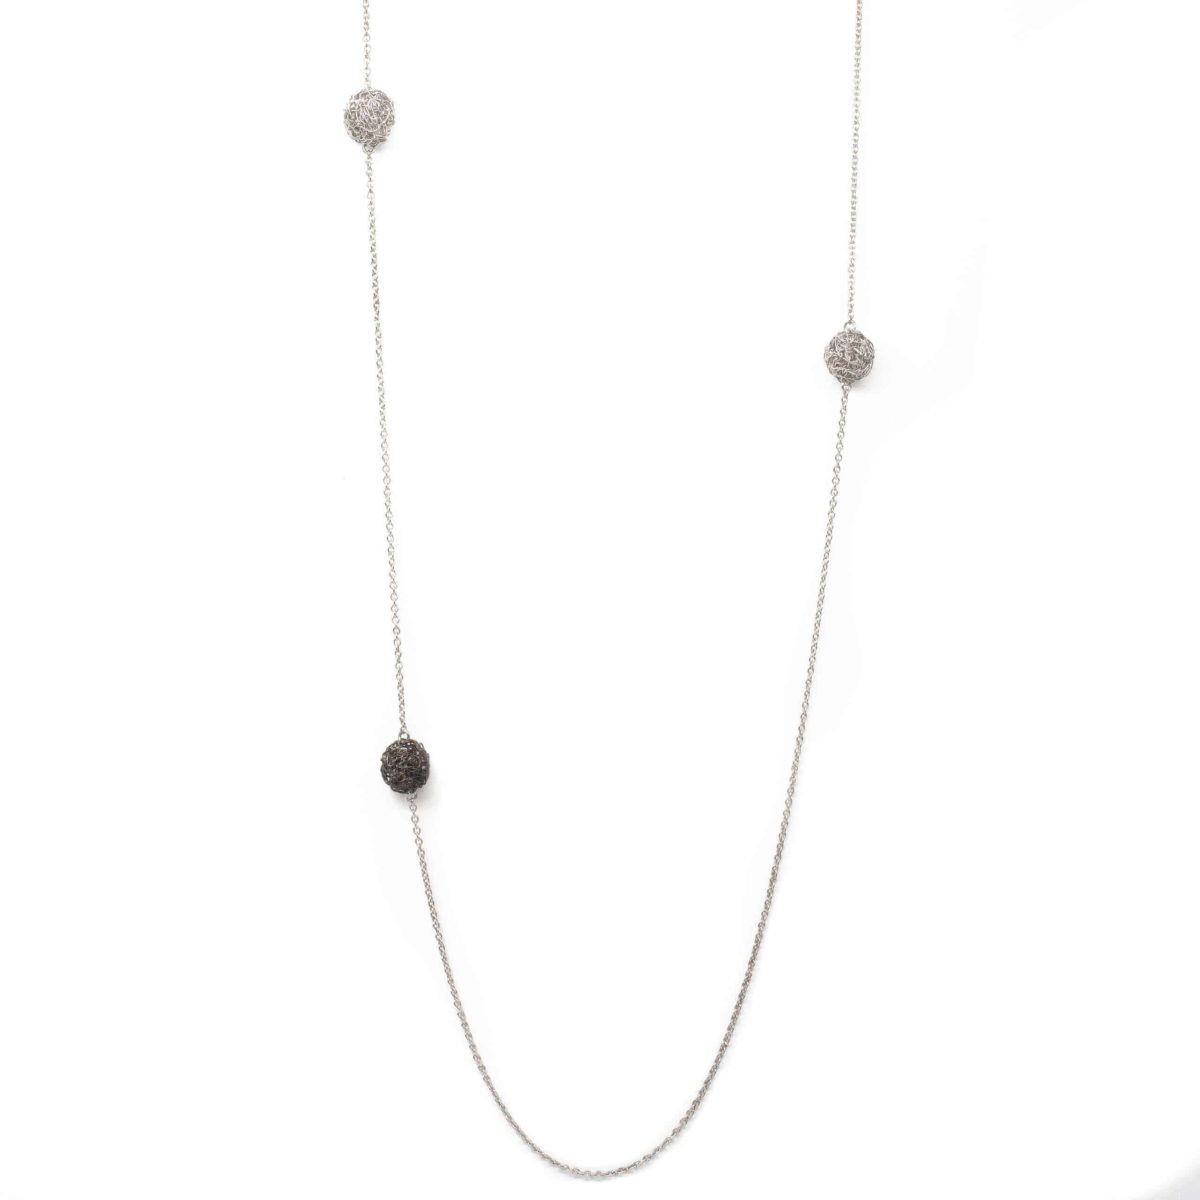 long pendant necklace in silver color